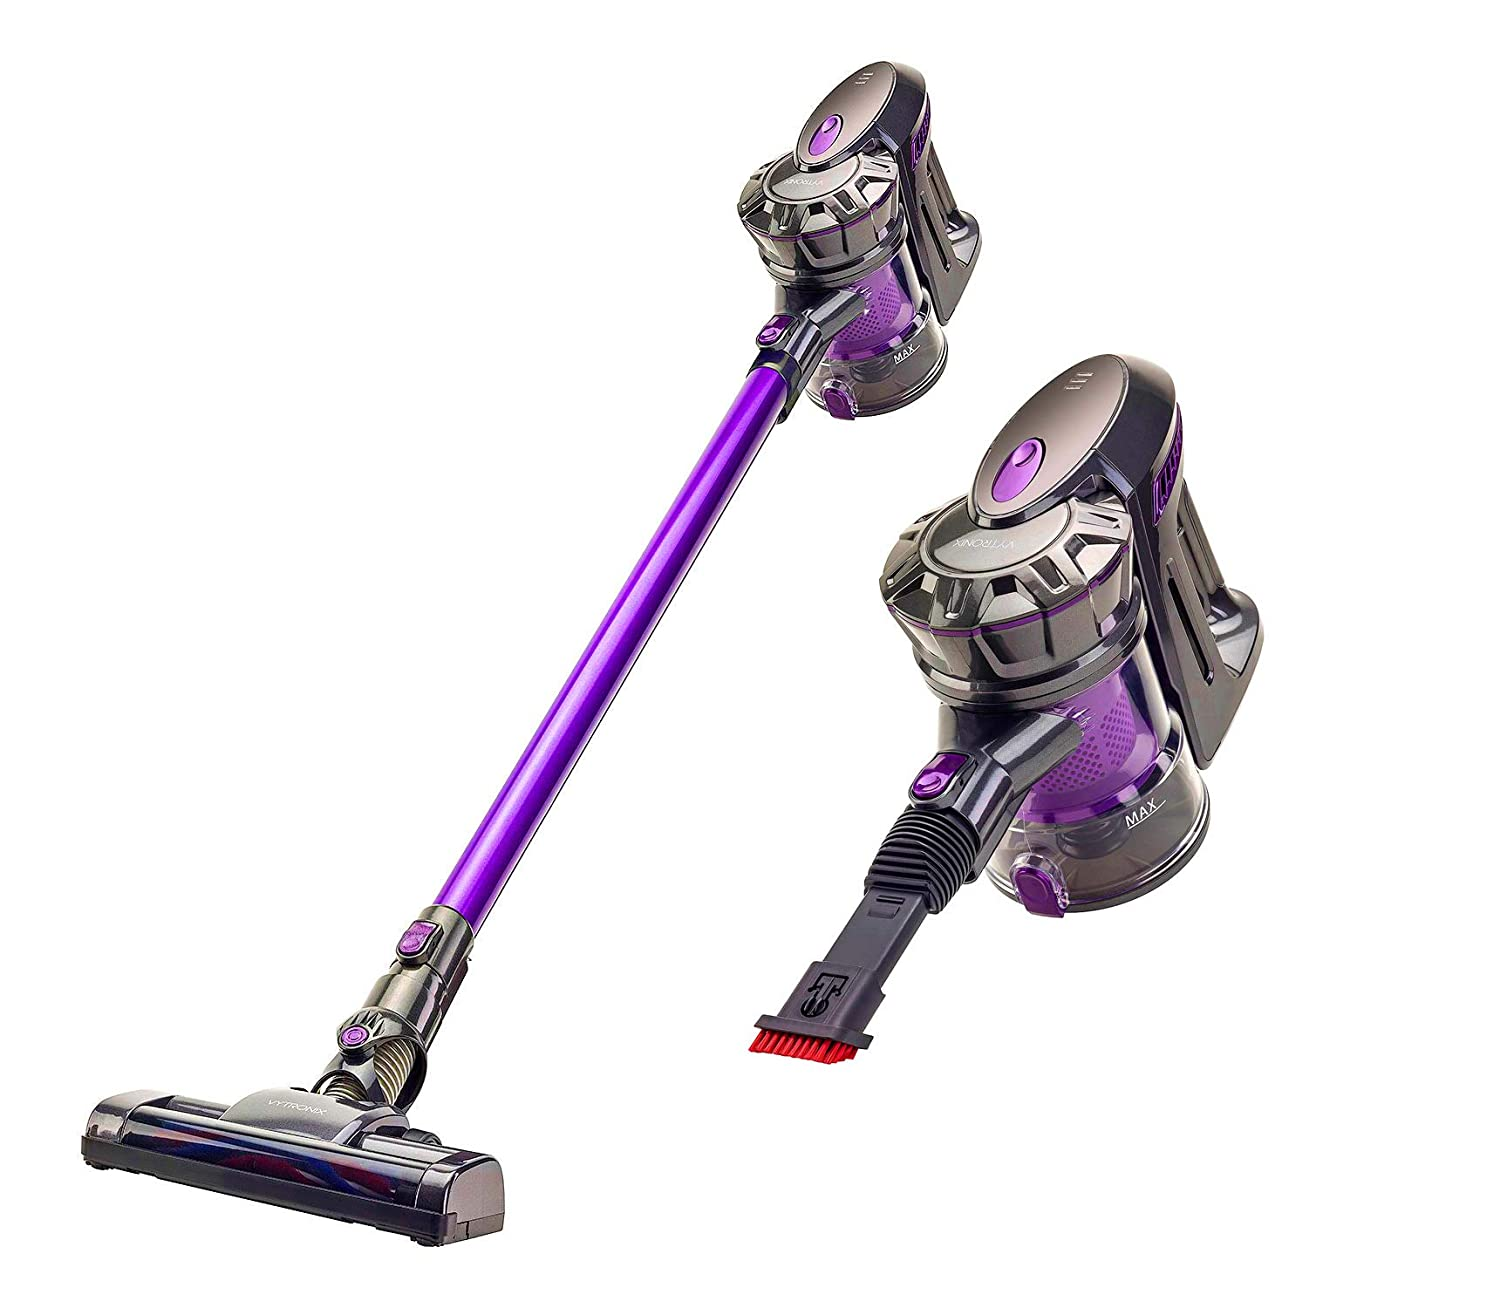 cordless vacuum cleaner compact upright handheld stick lithium battery operated 660902180943 ebay. Black Bedroom Furniture Sets. Home Design Ideas